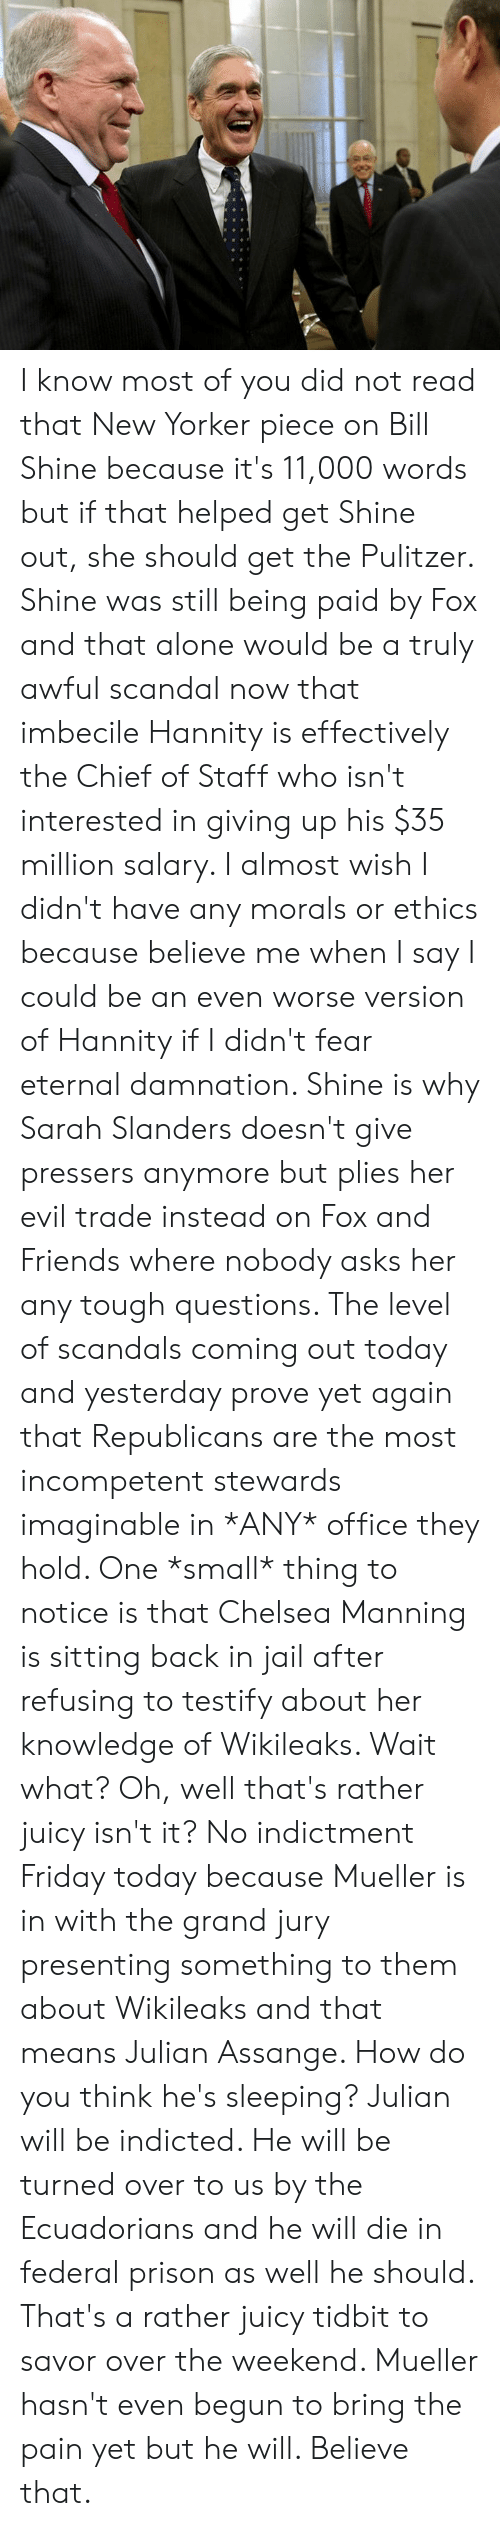 Being Alone, Chelsea, and Friday: I know most of you did not read that New Yorker piece on Bill Shine because it's 11,000 words but if that helped get Shine out, she should get the Pulitzer. Shine was still being paid by Fox and that alone would be a truly awful scandal now that imbecile Hannity is effectively the Chief of Staff who isn't interested in giving up his $35 million salary. I almost wish I didn't have any morals or ethics because believe me when I say I could be an even worse version of Hannity if I didn't fear eternal damnation. Shine is why Sarah Slanders doesn't give pressers anymore but plies her evil trade instead on Fox and Friends where nobody asks her any tough questions.   The level of scandals coming out today and yesterday prove yet again that Republicans are the most incompetent stewards imaginable in *ANY* office they hold.   One *small* thing to notice is that Chelsea Manning is sitting back in jail after refusing to testify about her knowledge of Wikileaks. Wait what?   Oh, well that's rather juicy isn't it? No indictment Friday today because Mueller is in with the grand jury presenting something to them about Wikileaks and that means Julian Assange. How do you think he's sleeping?  Julian will be indicted. He will be turned over to us by the Ecuadorians and he will die in federal prison as well he should.   That's a rather juicy tidbit to savor over the weekend. Mueller hasn't even begun to bring the pain yet but he will. Believe that.